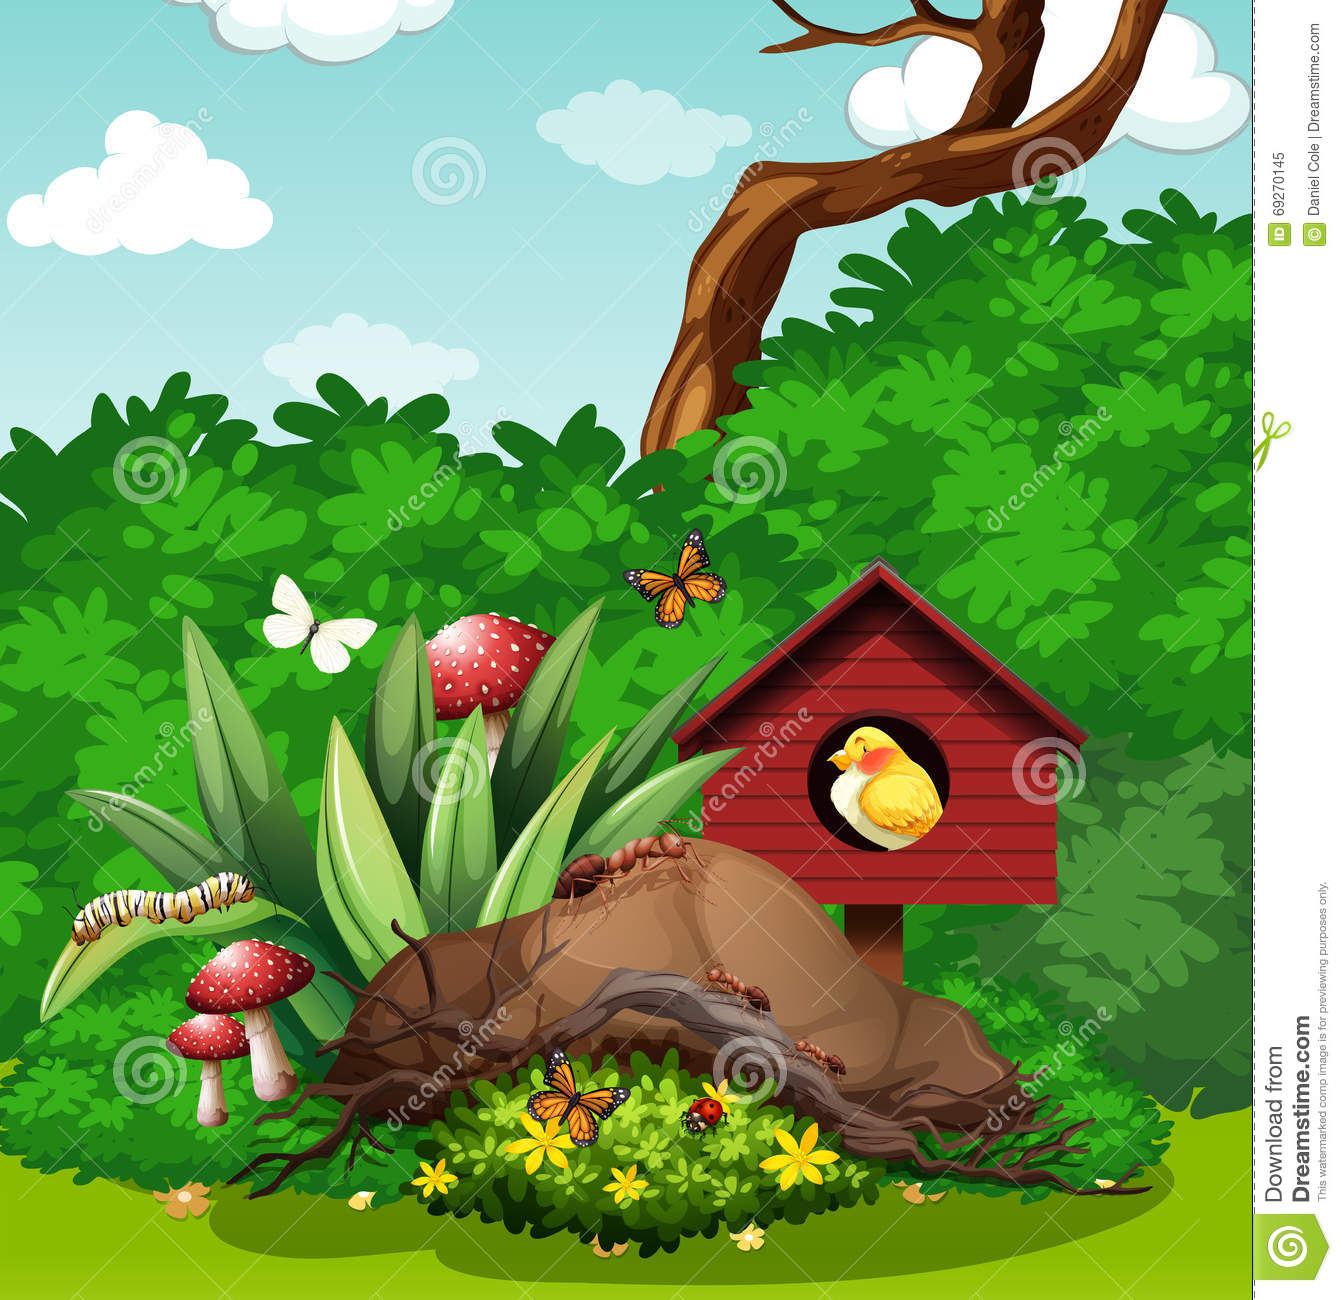 Bird And Bugs In The Garden Stock Vector - Illustration of